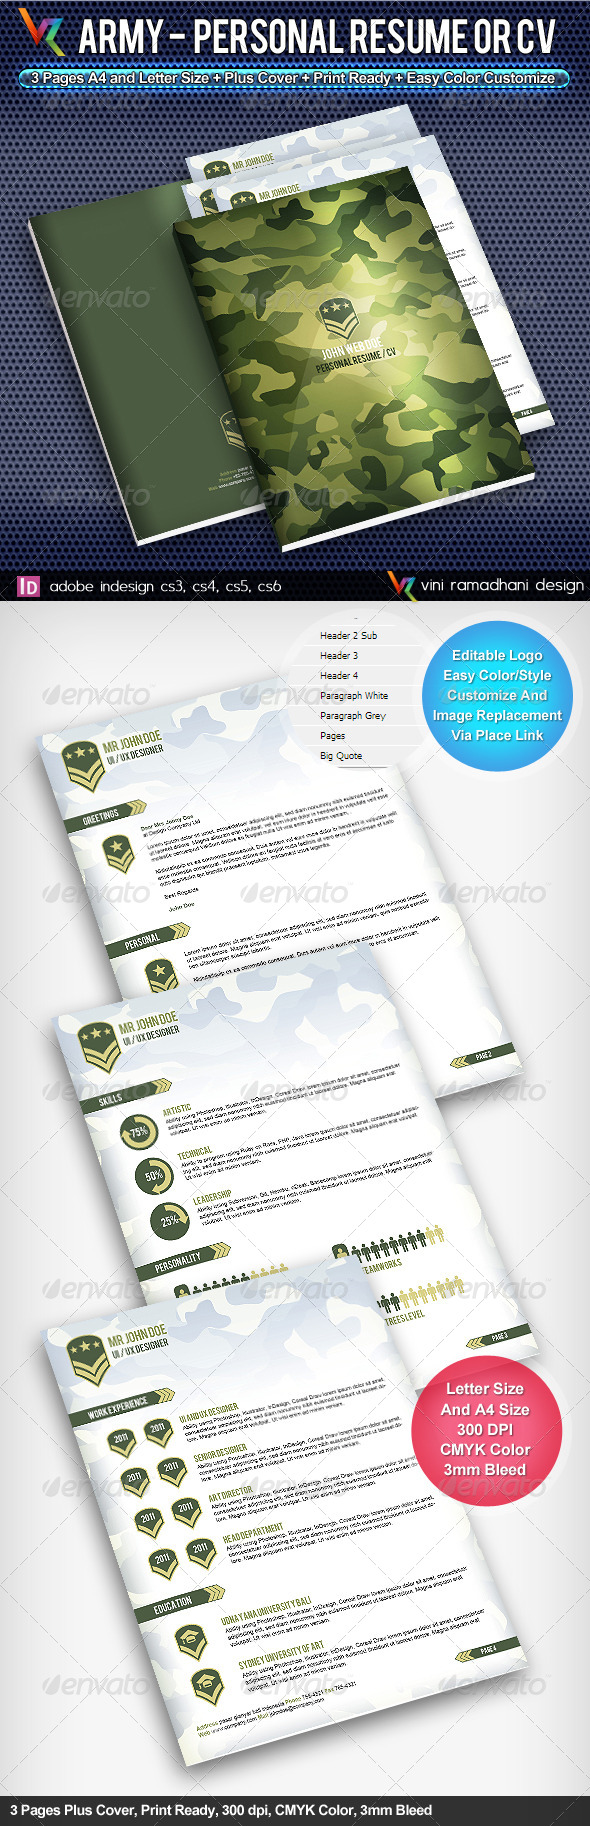 Army Personal Resume Or CV - Resumes Stationery